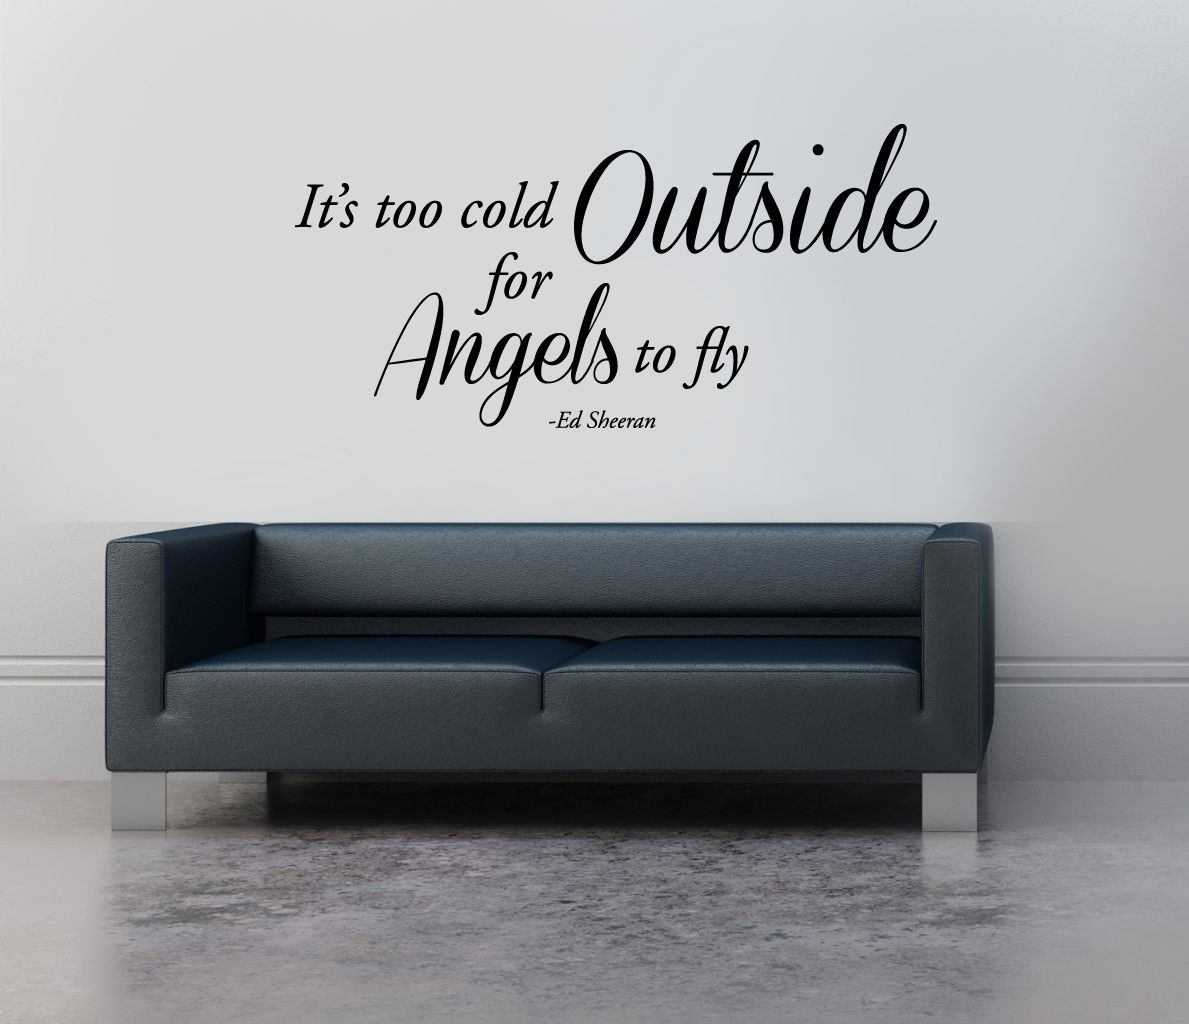 IT/'S TOO COLD OUT SIDE FOR ANGELS ED SHEERAN  WALL ART QUOTE  STICKER